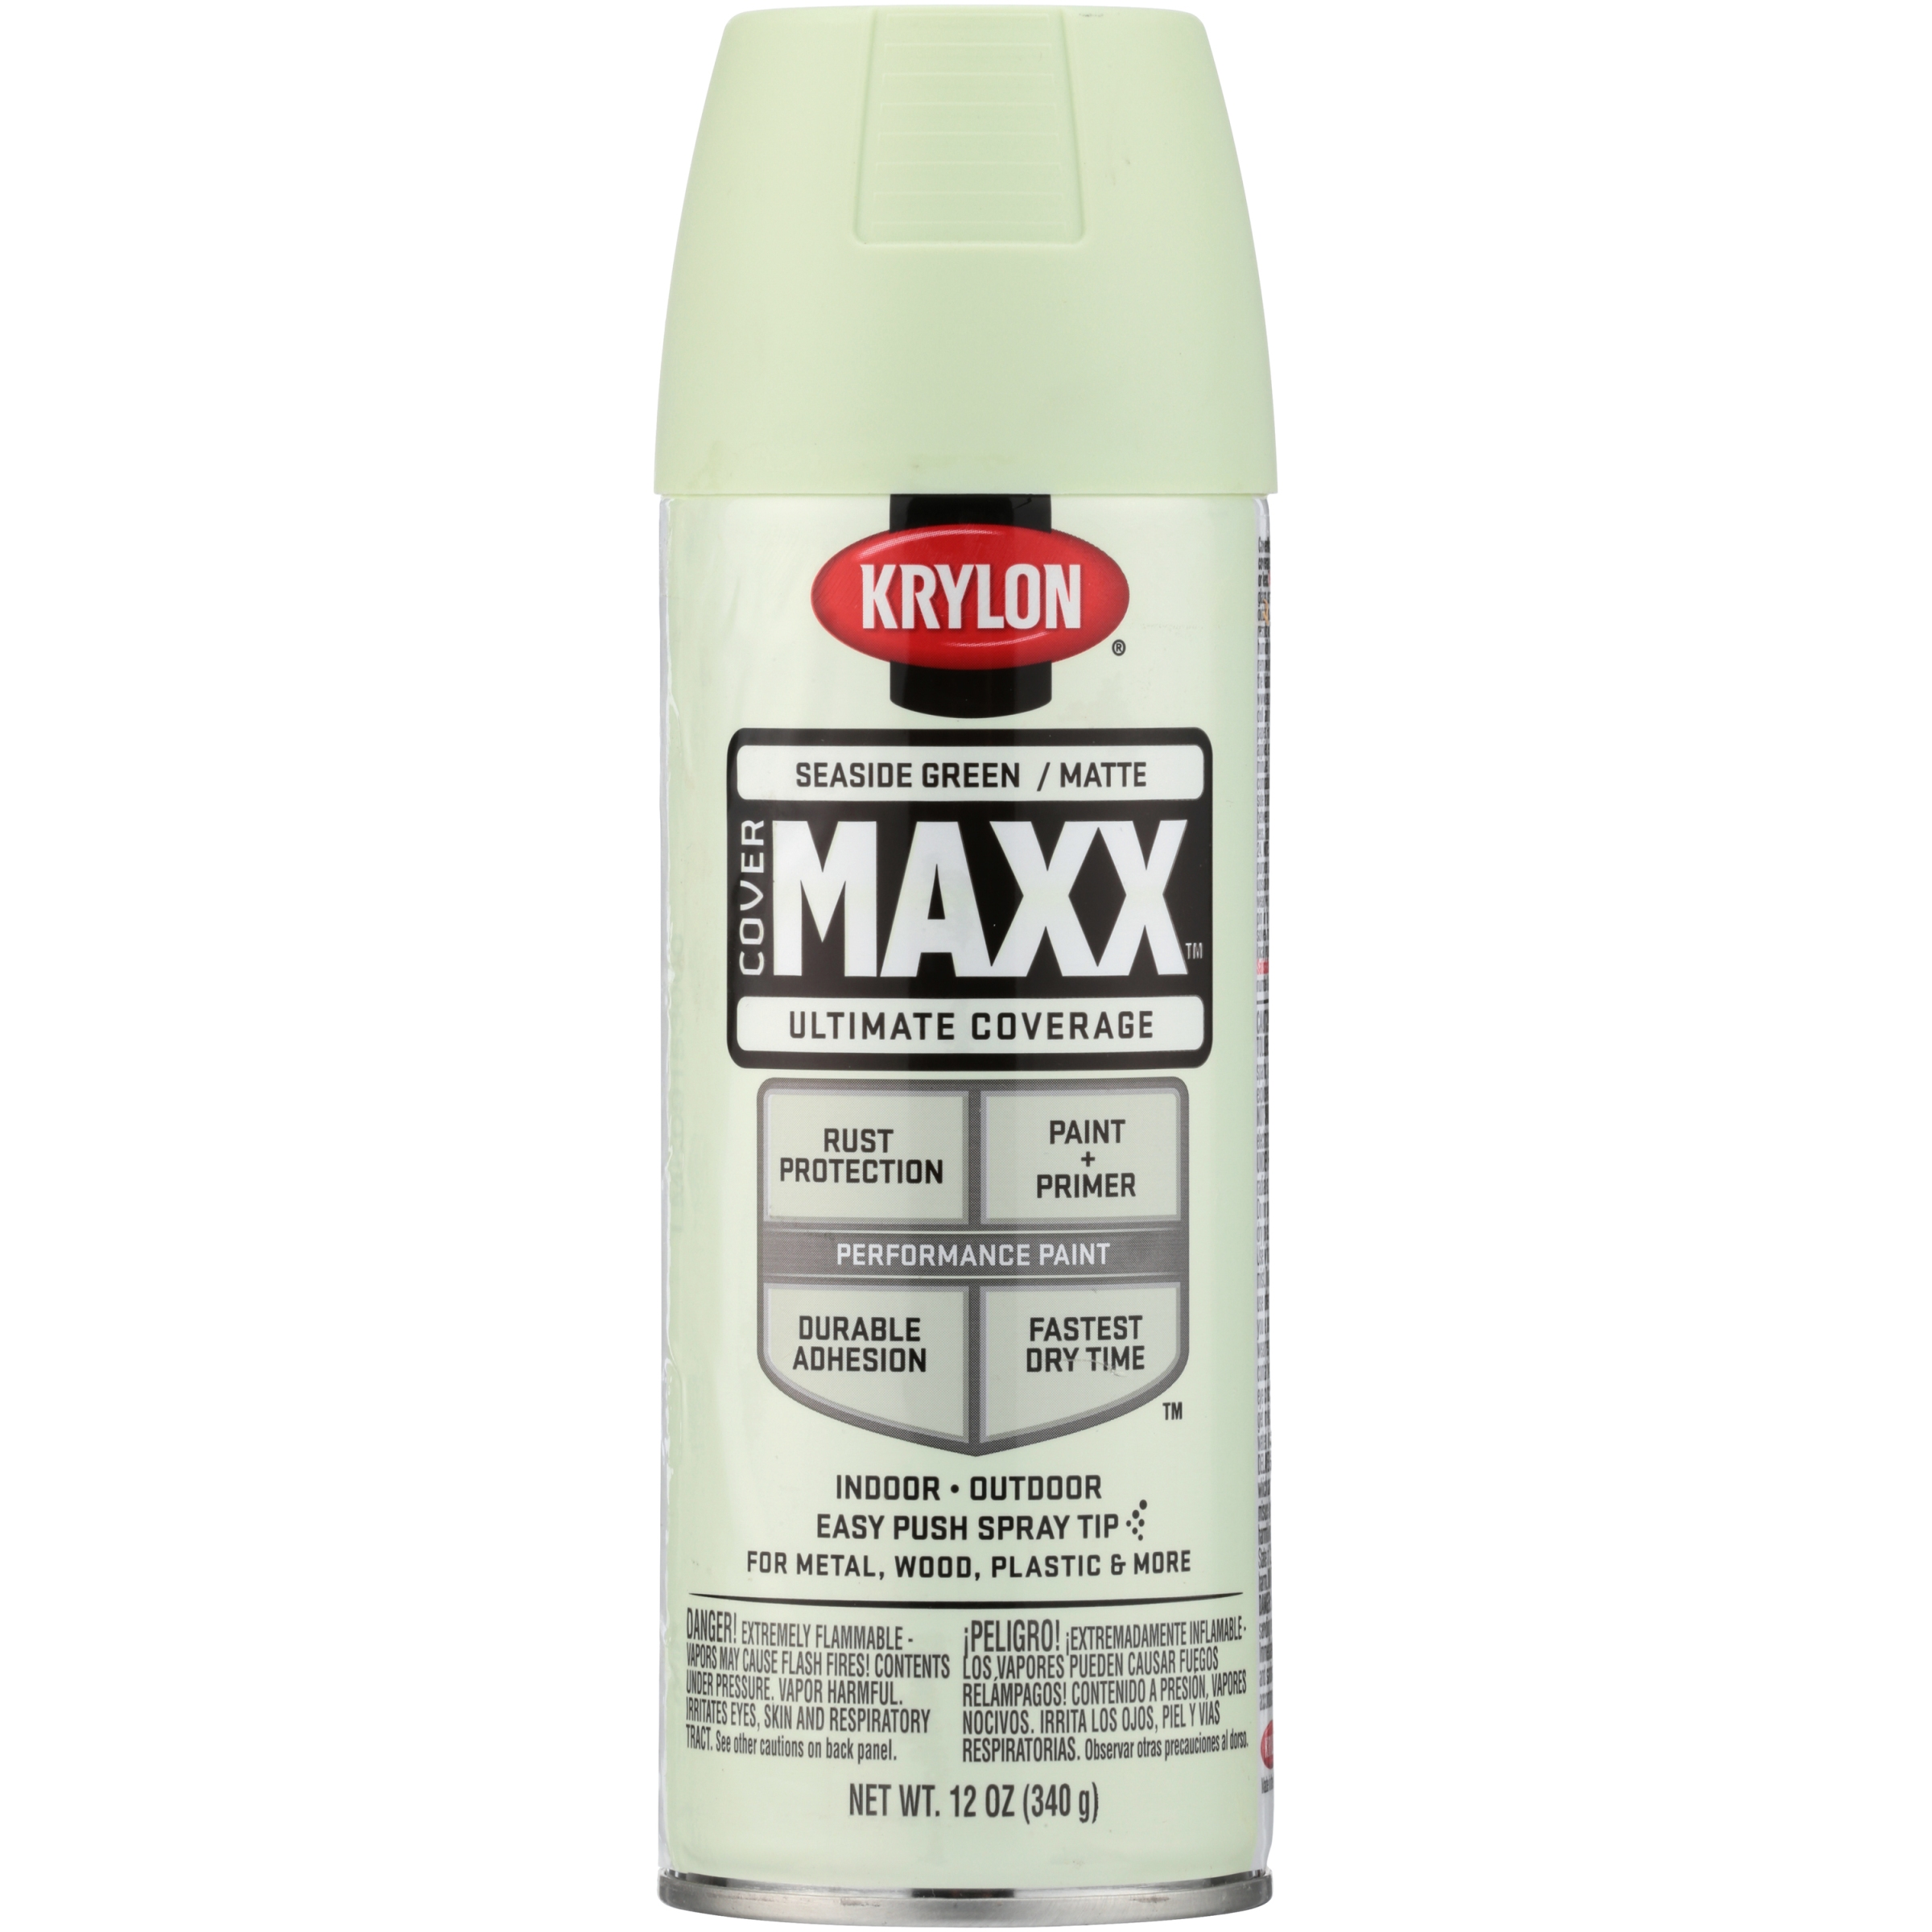 Krylon® CoverMaxx™ Matte Seaside Green Ultimate Coverage Spray Paint 12 oz. Aerosol Can